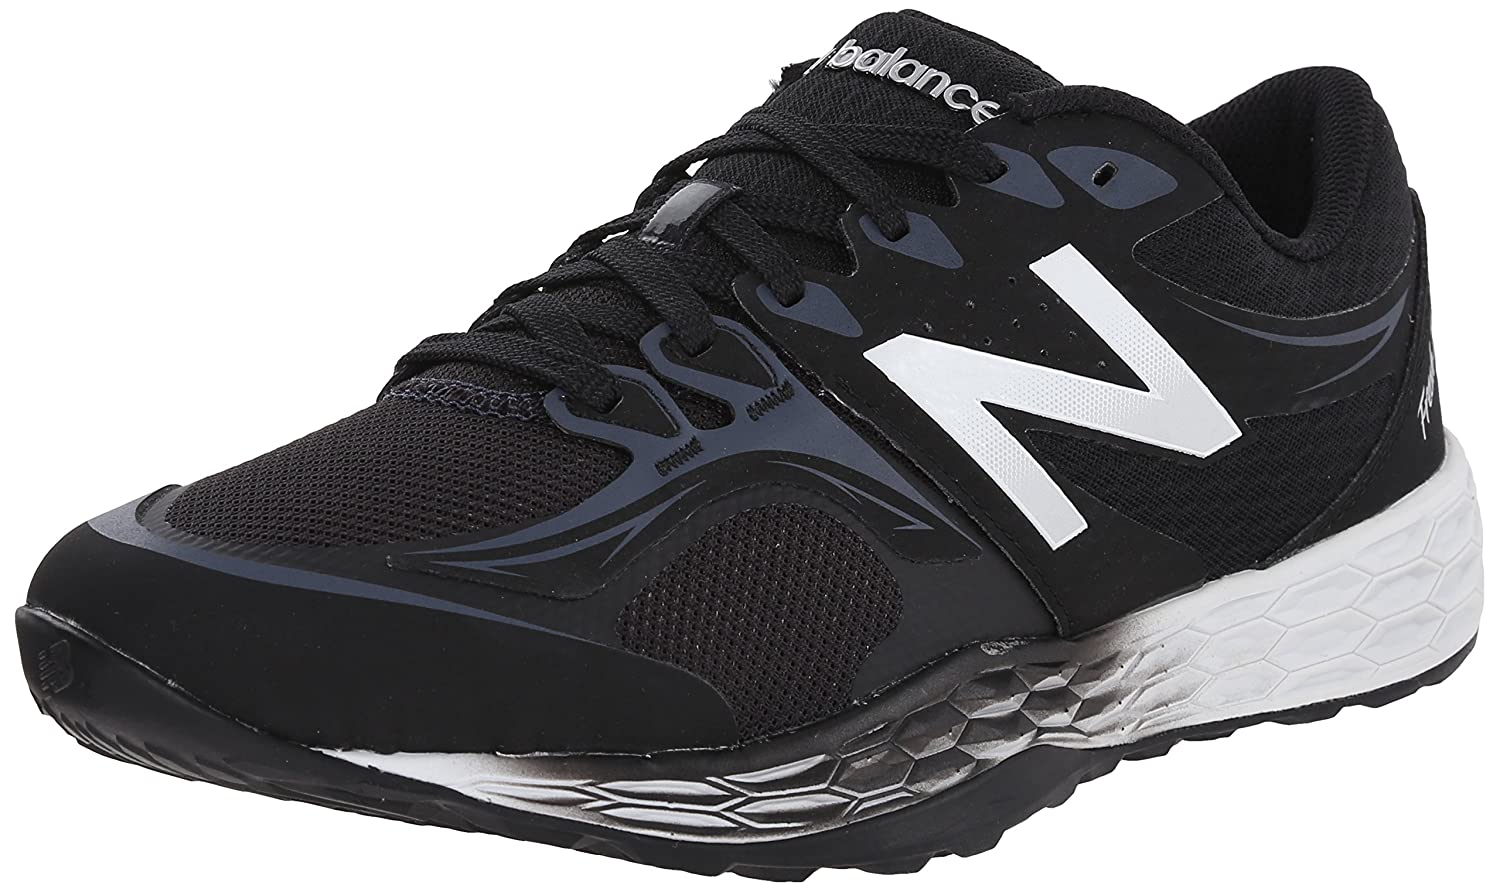 New Balance Men's MX80V2 Fresh Foam Training Shoe B00R5M8VKW 11.5 D(M) US|Black/Silver